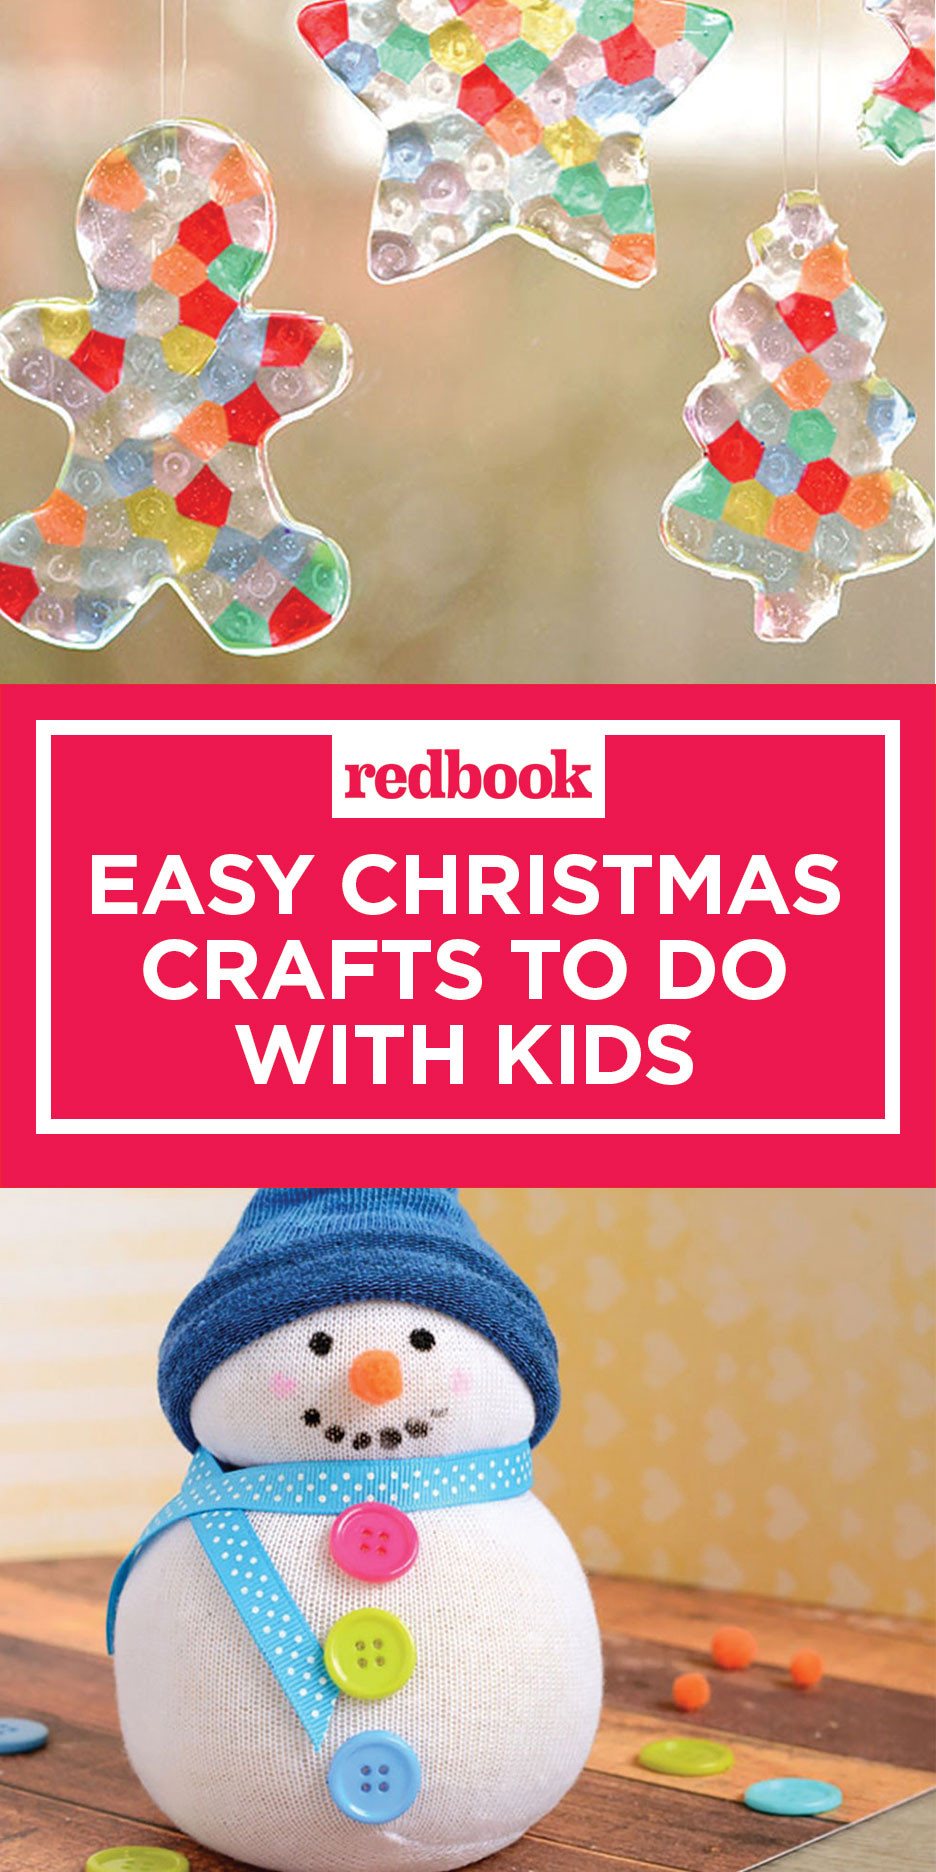 Christmas Arts And Craft Ideas For Toddlers  Easy Christmas Crafts for Kids Holiday Arts and Crafts